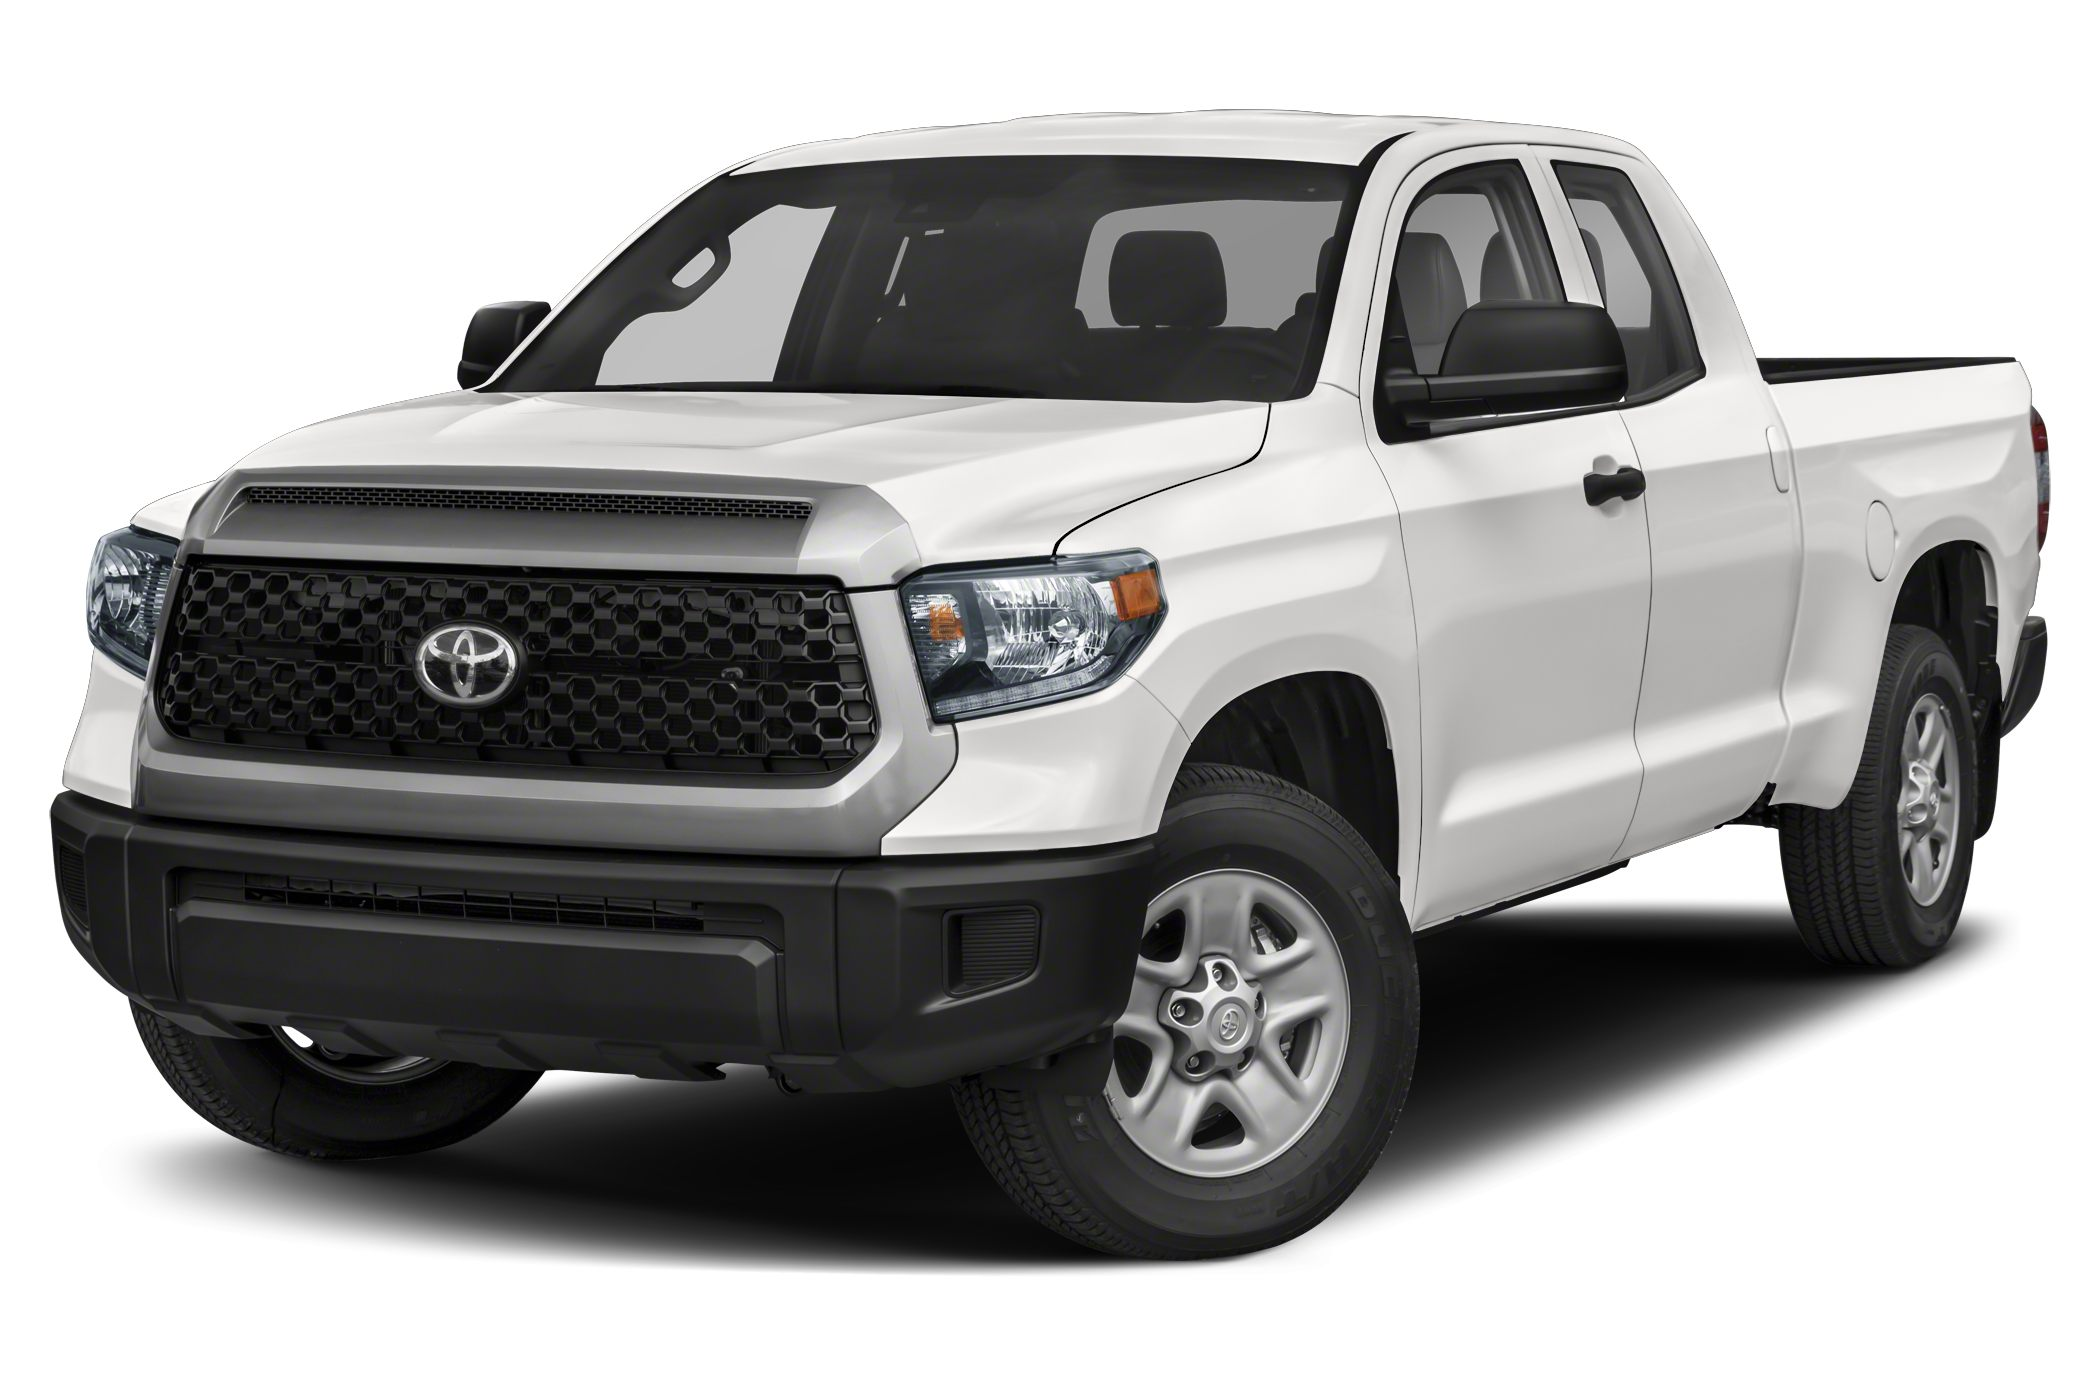 2018 Toyota Tundra SR5 4.6L V8 4x4 Double Cab 6.6 ft. box 145.7 in. WB